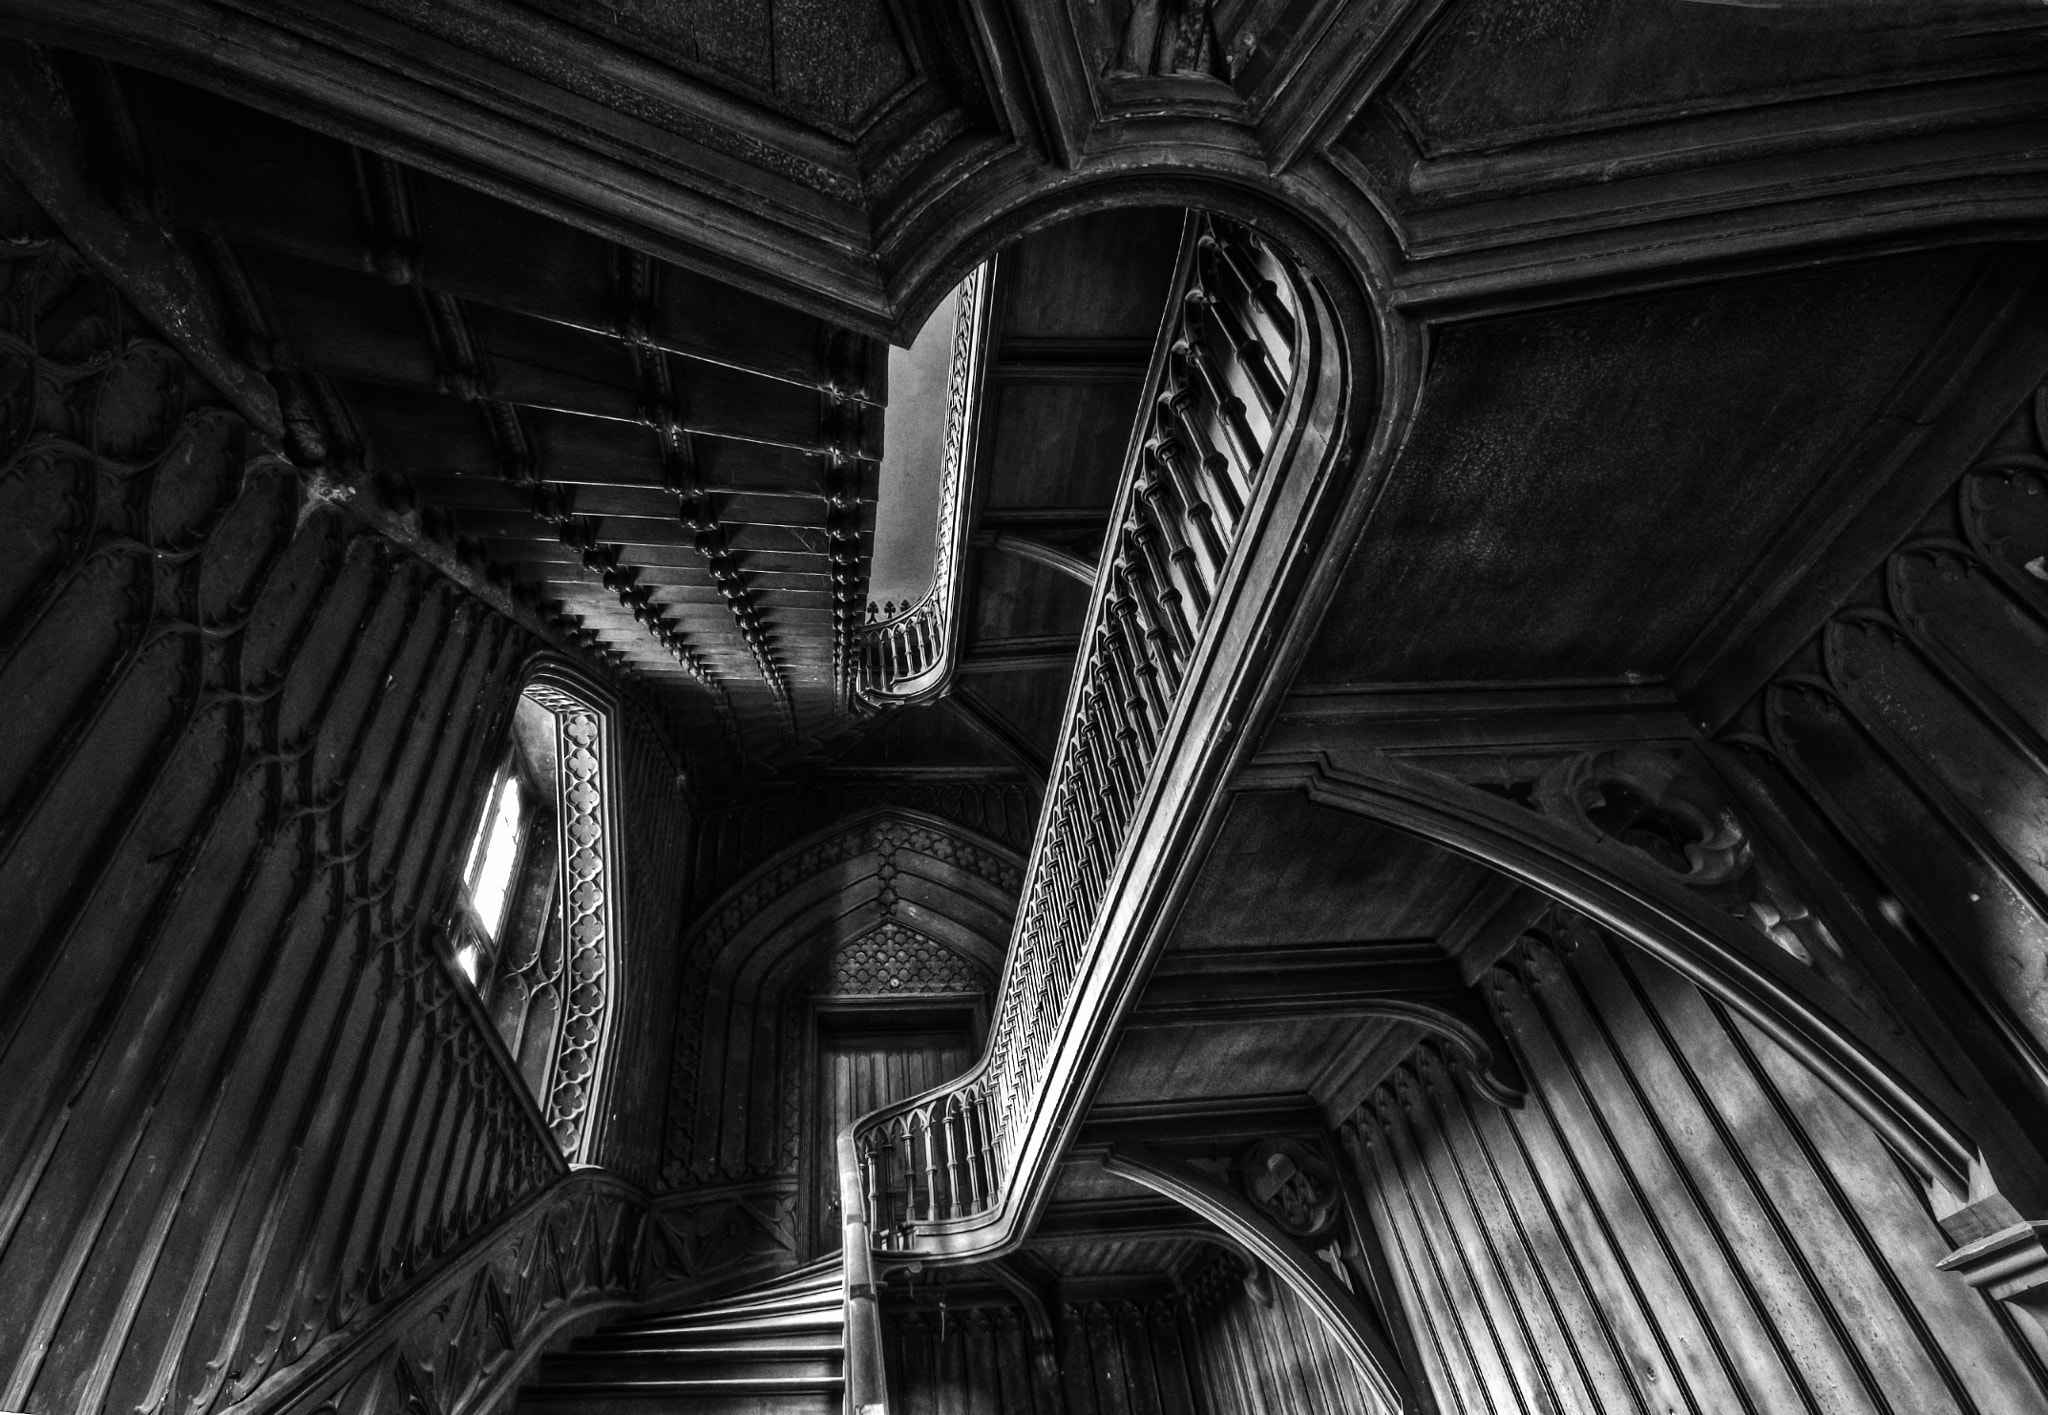 Photograph Harriet's Staircase - looking up by Adrian Sadlier on 500px